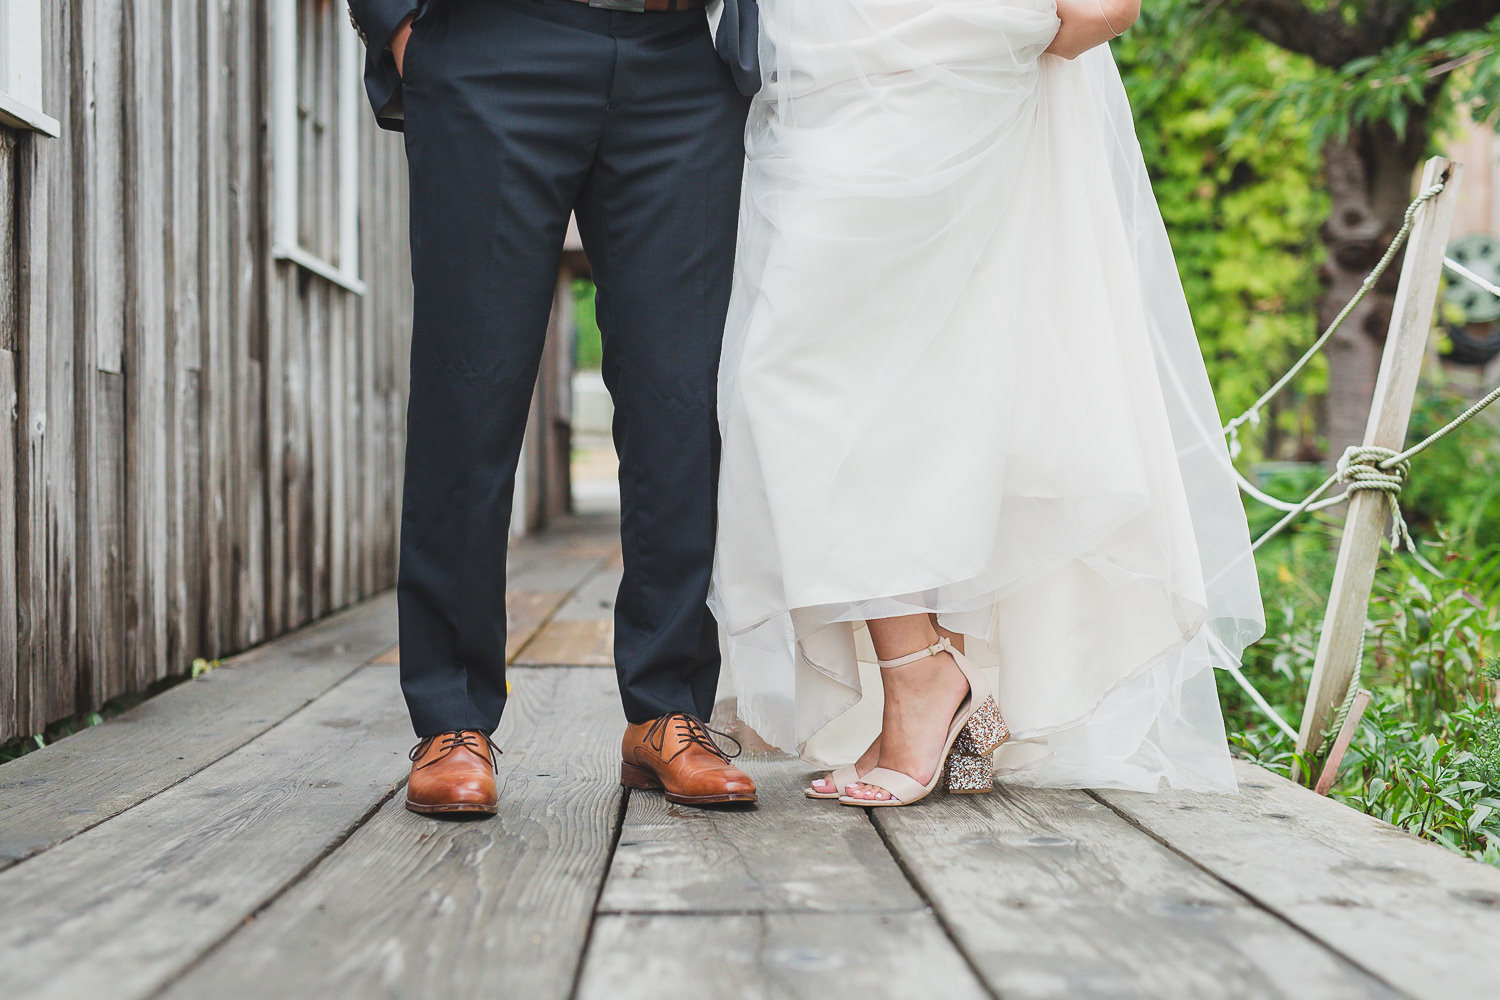 bride and groom shoe photo